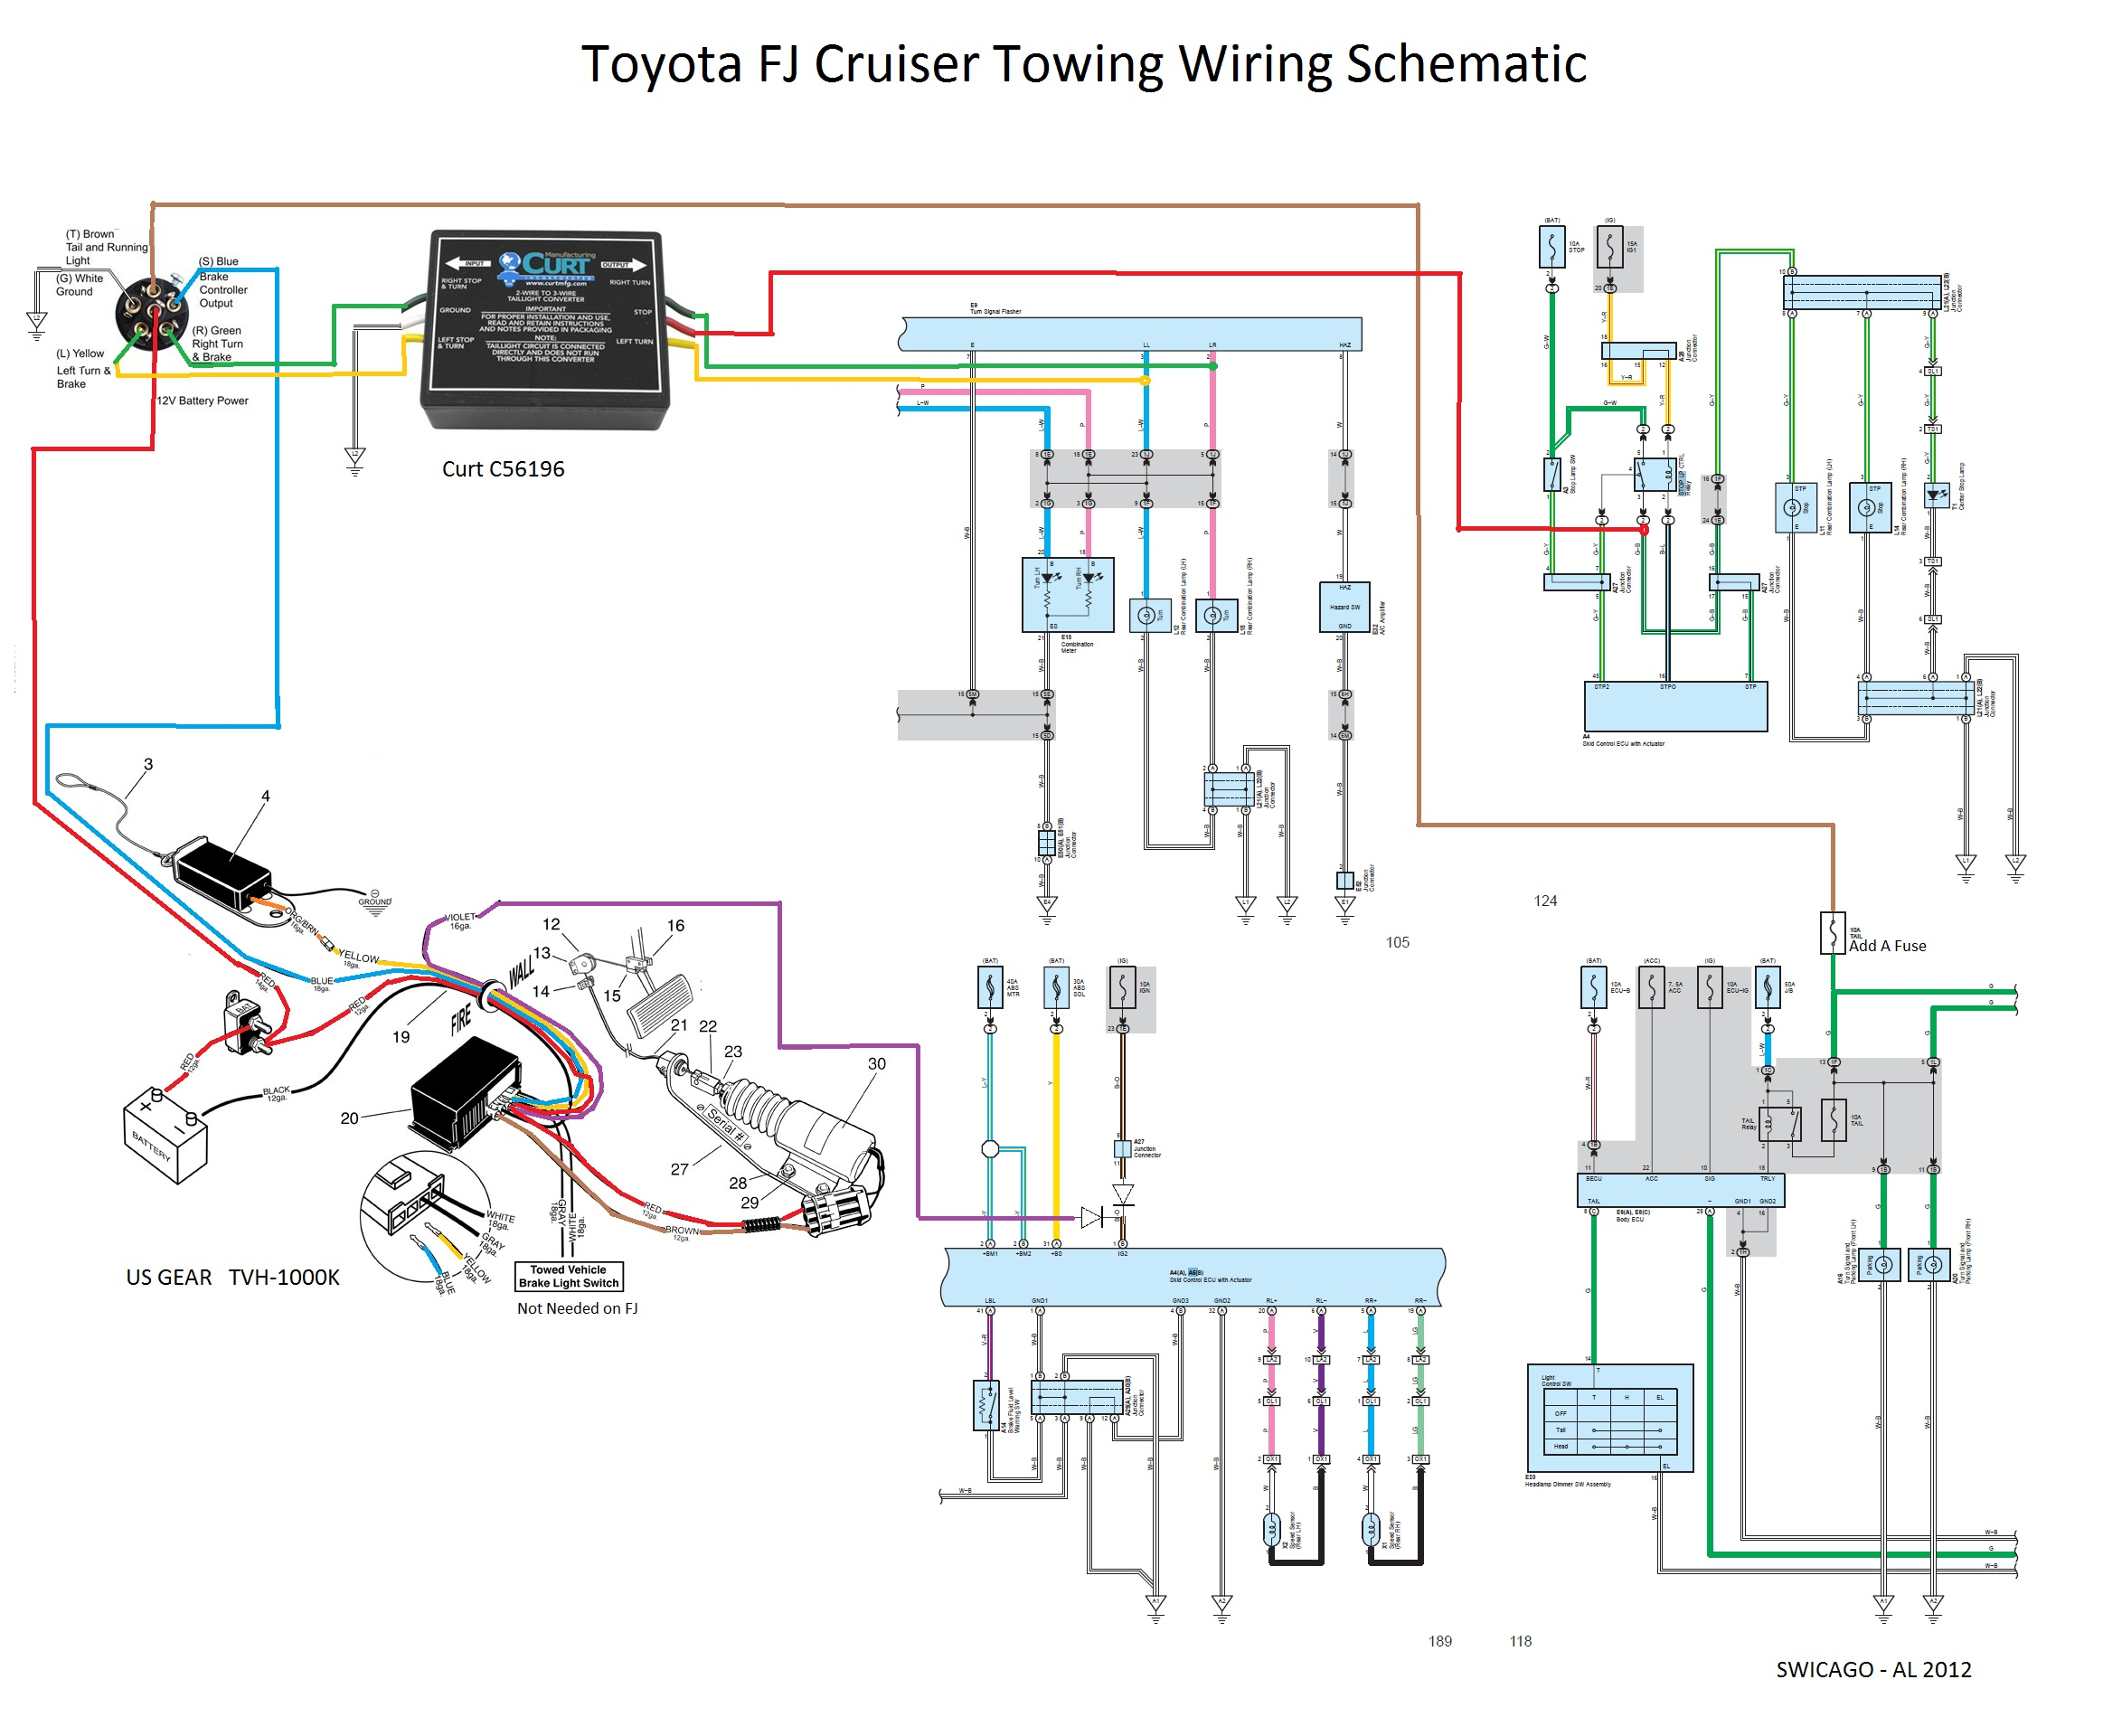 toyota tundra wiring diagram - wiring diagram and last-income -  last-income.rennella.it  rennella.it